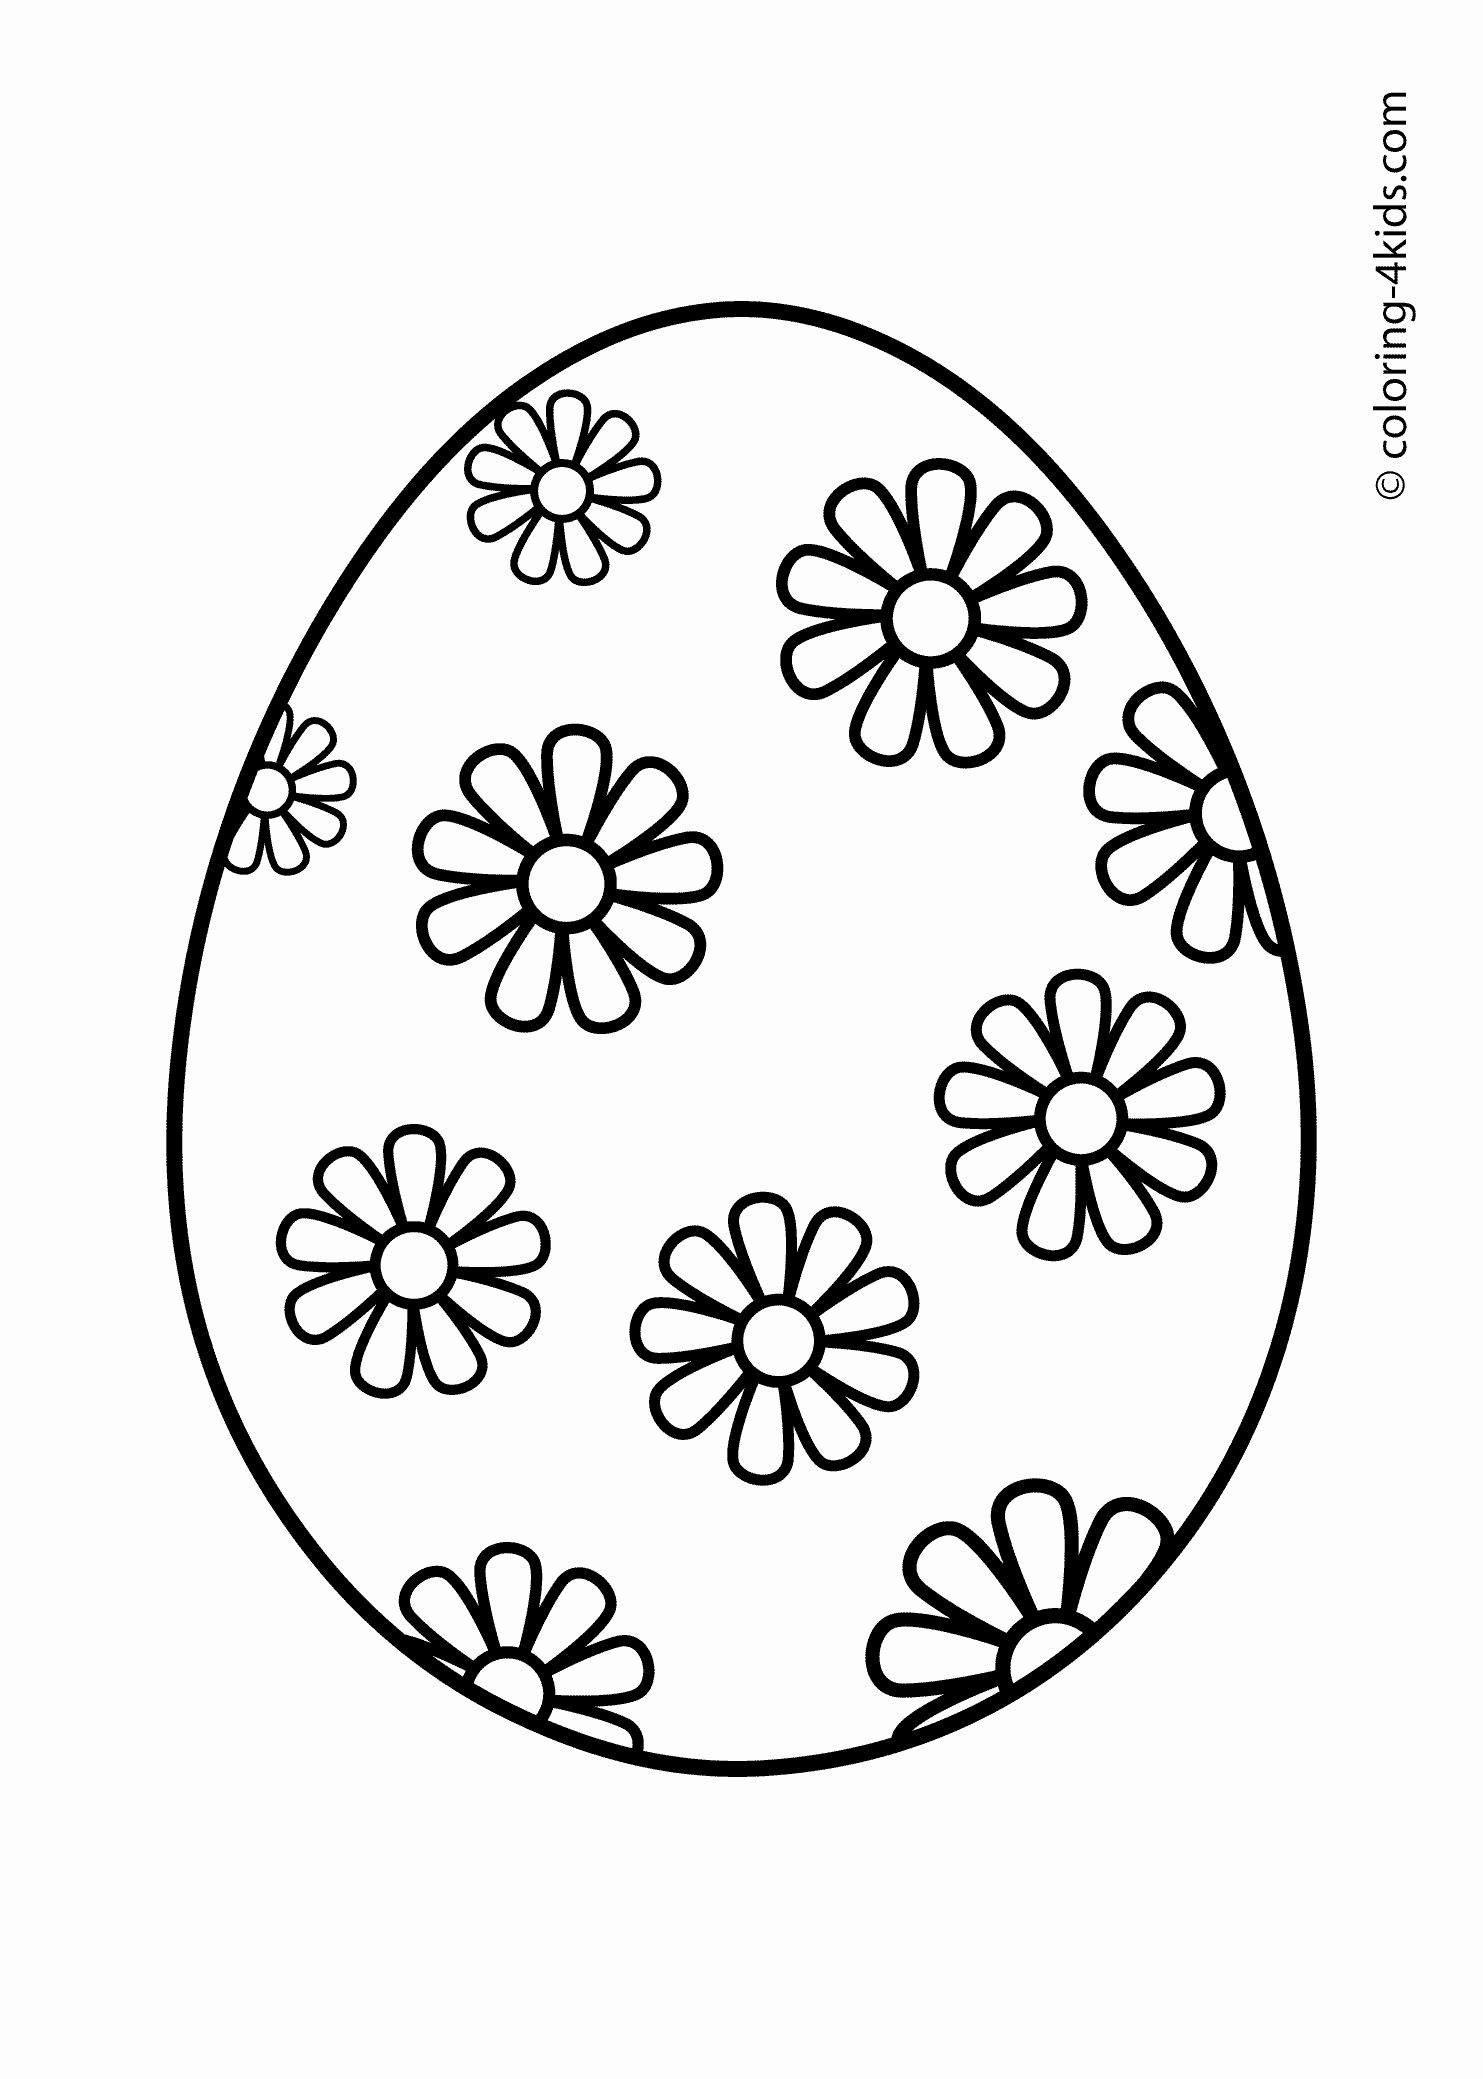 Coloring Book Easter Egg Easter Egg Coloring Pages Egg Coloring Page Coloring Easter Eggs